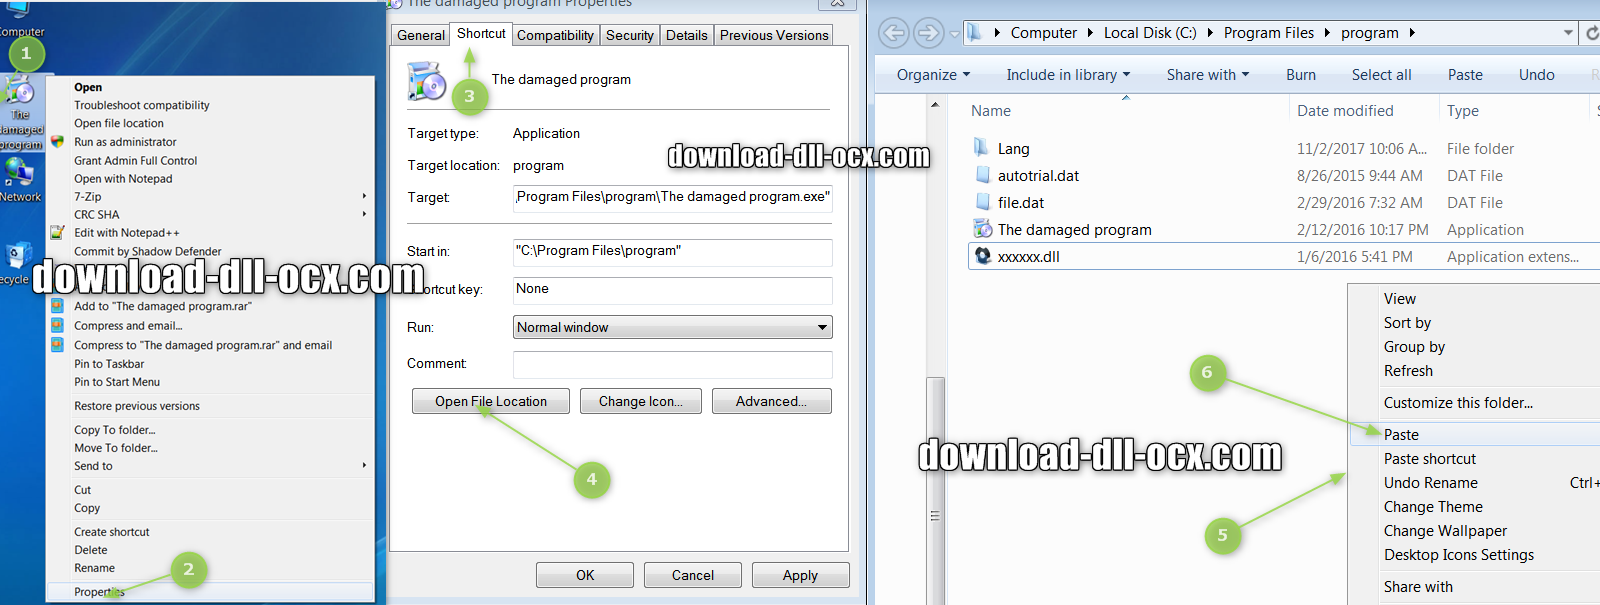 how to install transformiix.dll file? for fix missing